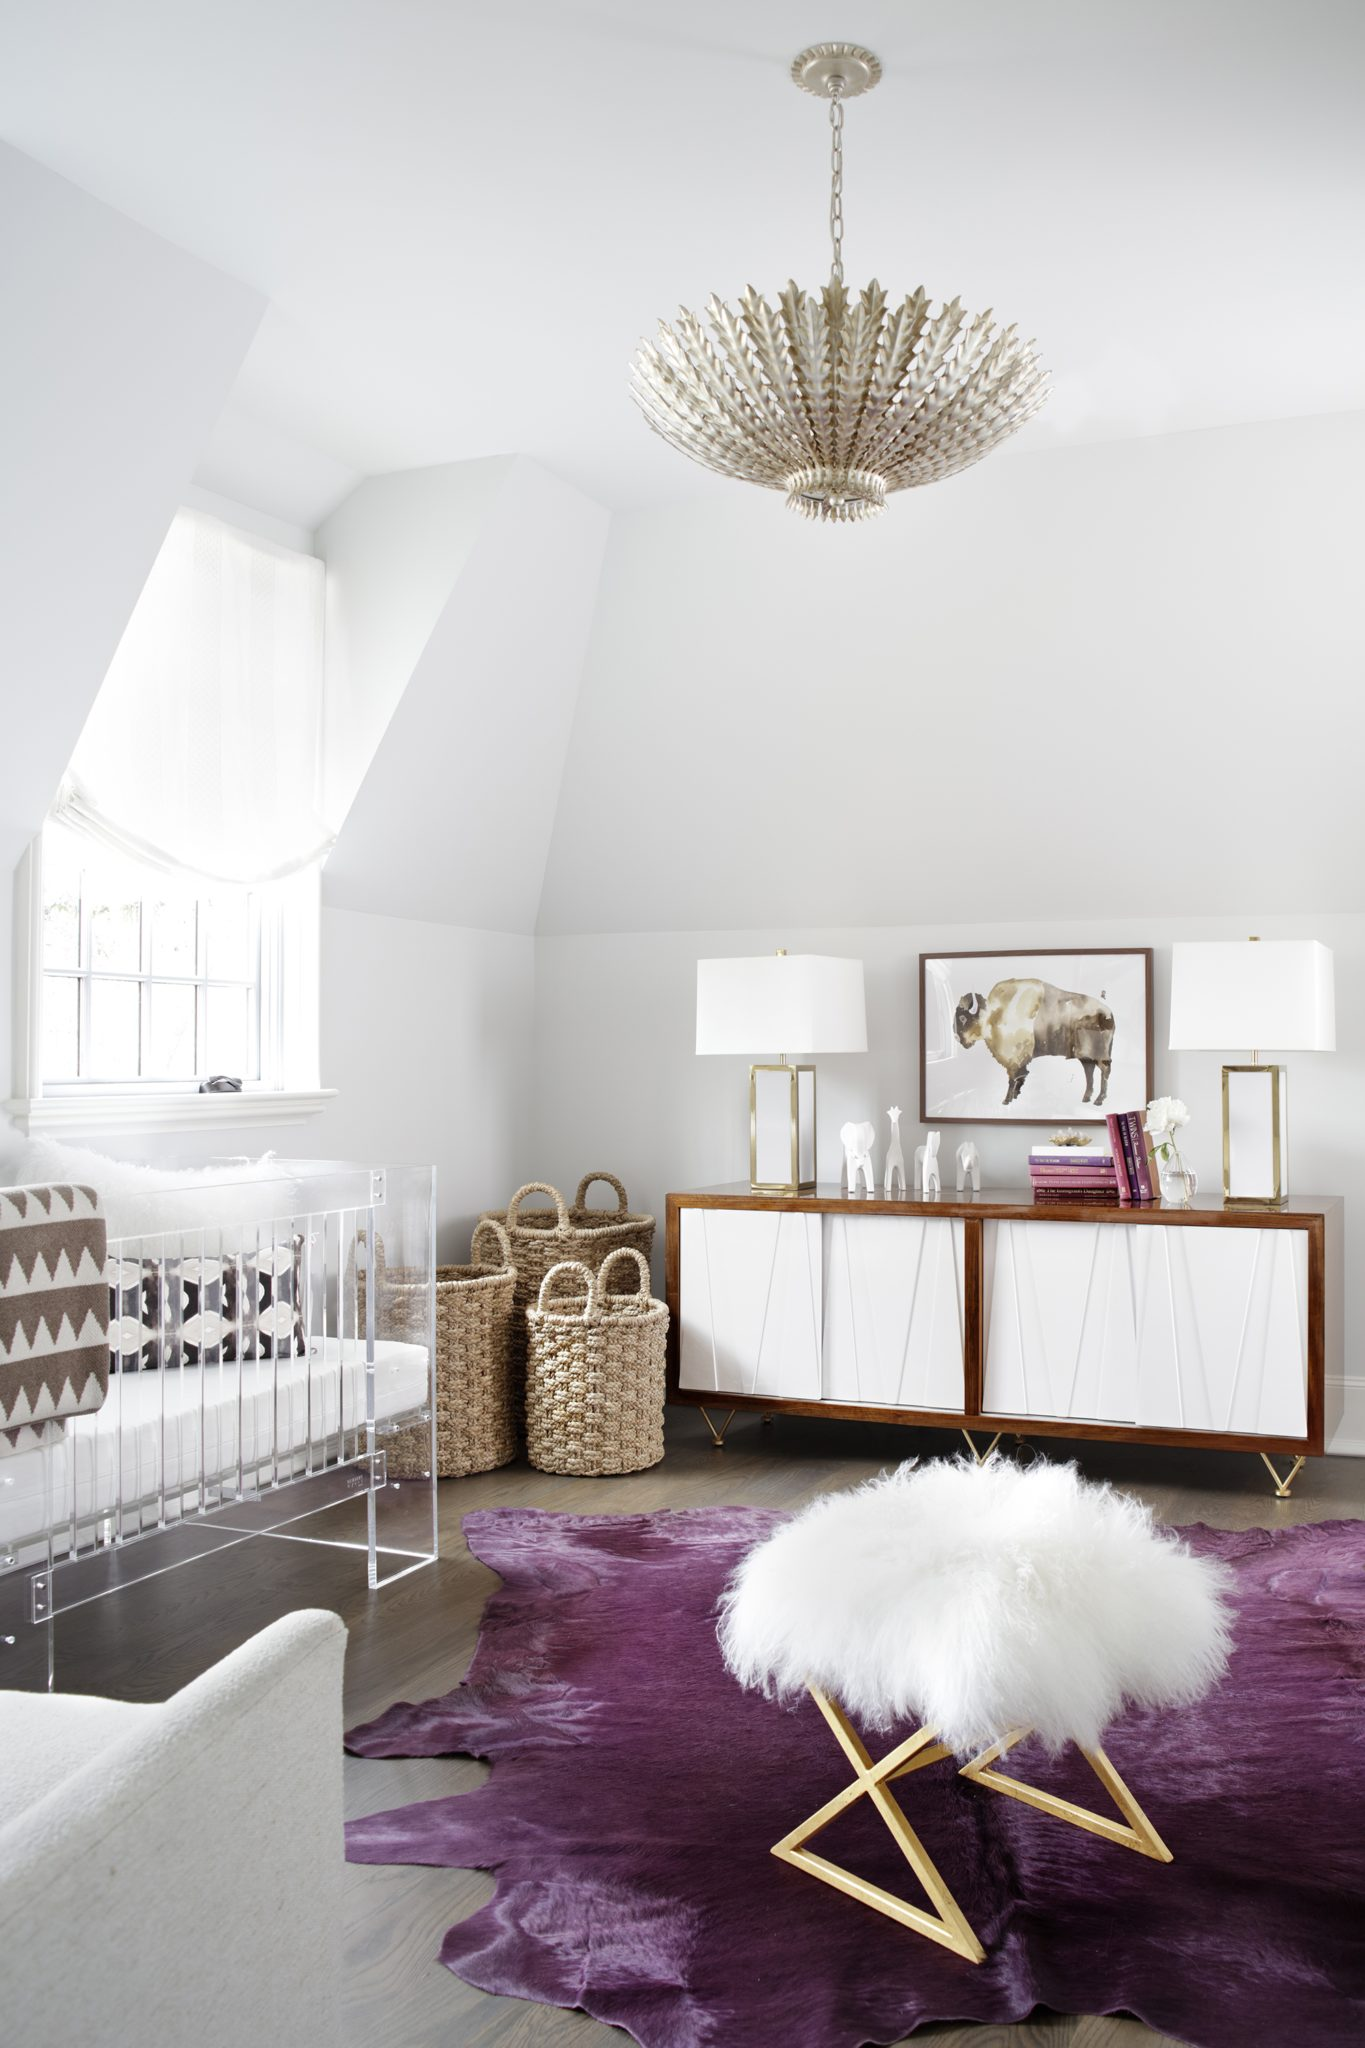 Comprising themid-century modern credenza, purple rug, and fur-topped stool, furnishings from Kellum & Company in Birmingham, Albama, provide the backbone of the nursery design. The overhead lighting fixture is from Visual Comfort, and the baskets are from Scott's Antique Markets in Atlanta.